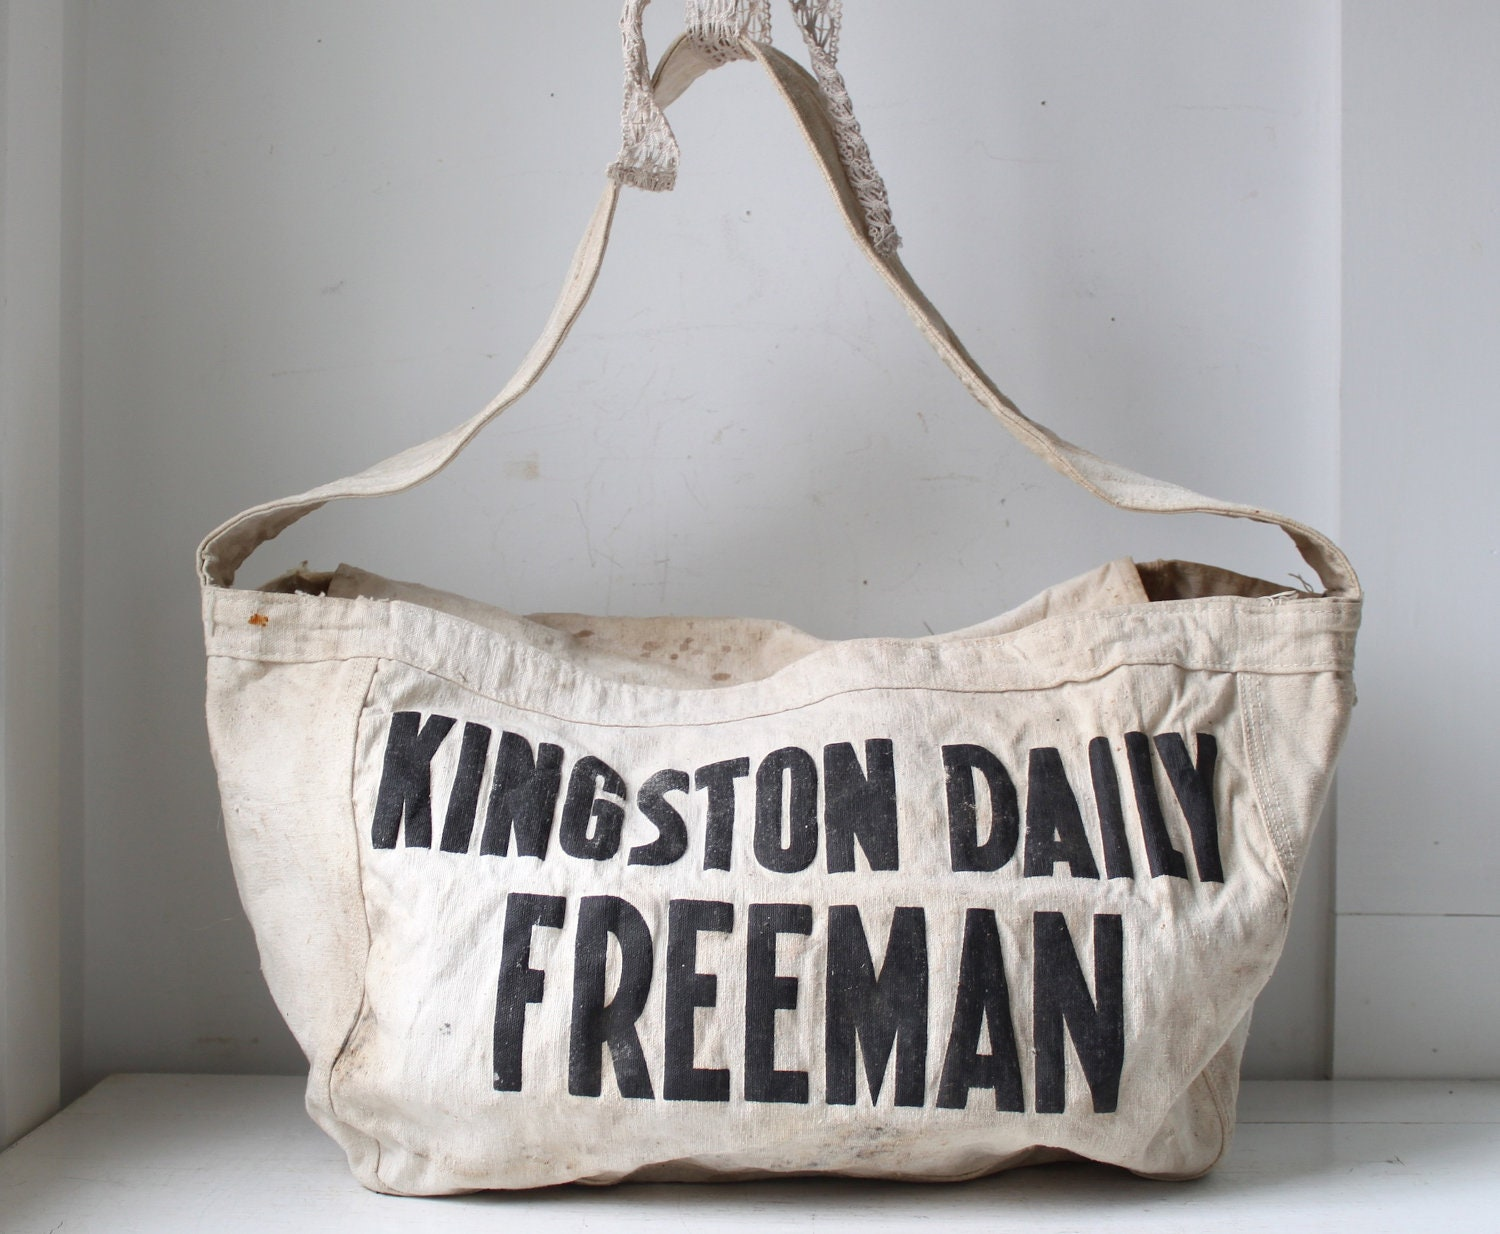 Vintage 1950s Newspaper Bag Kingston Daily Freeman Delivery